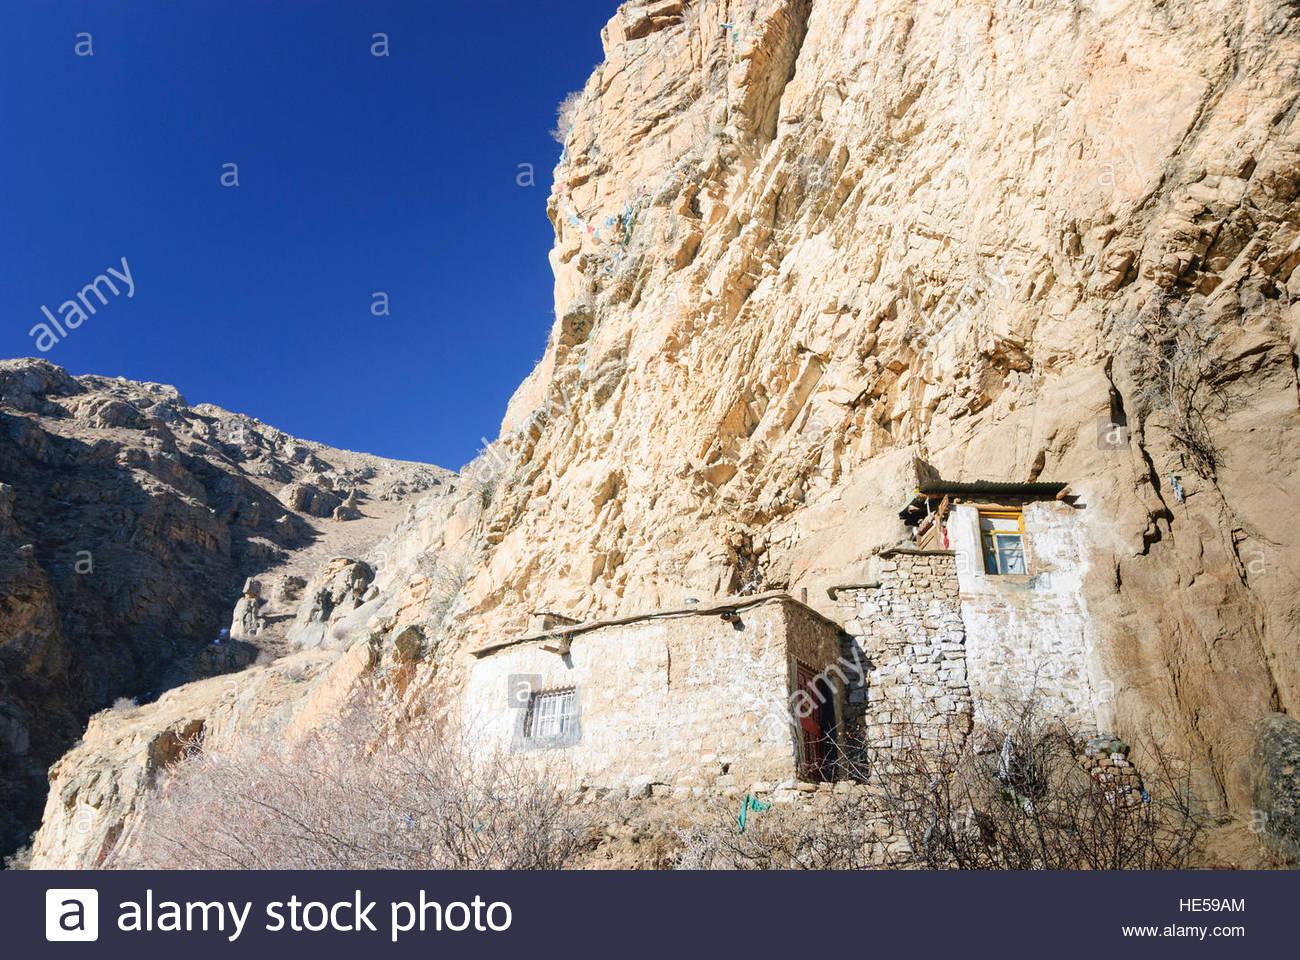 Guijie Beijing, Lhasa: Mountains around the Sera Monastery with houses of the ...